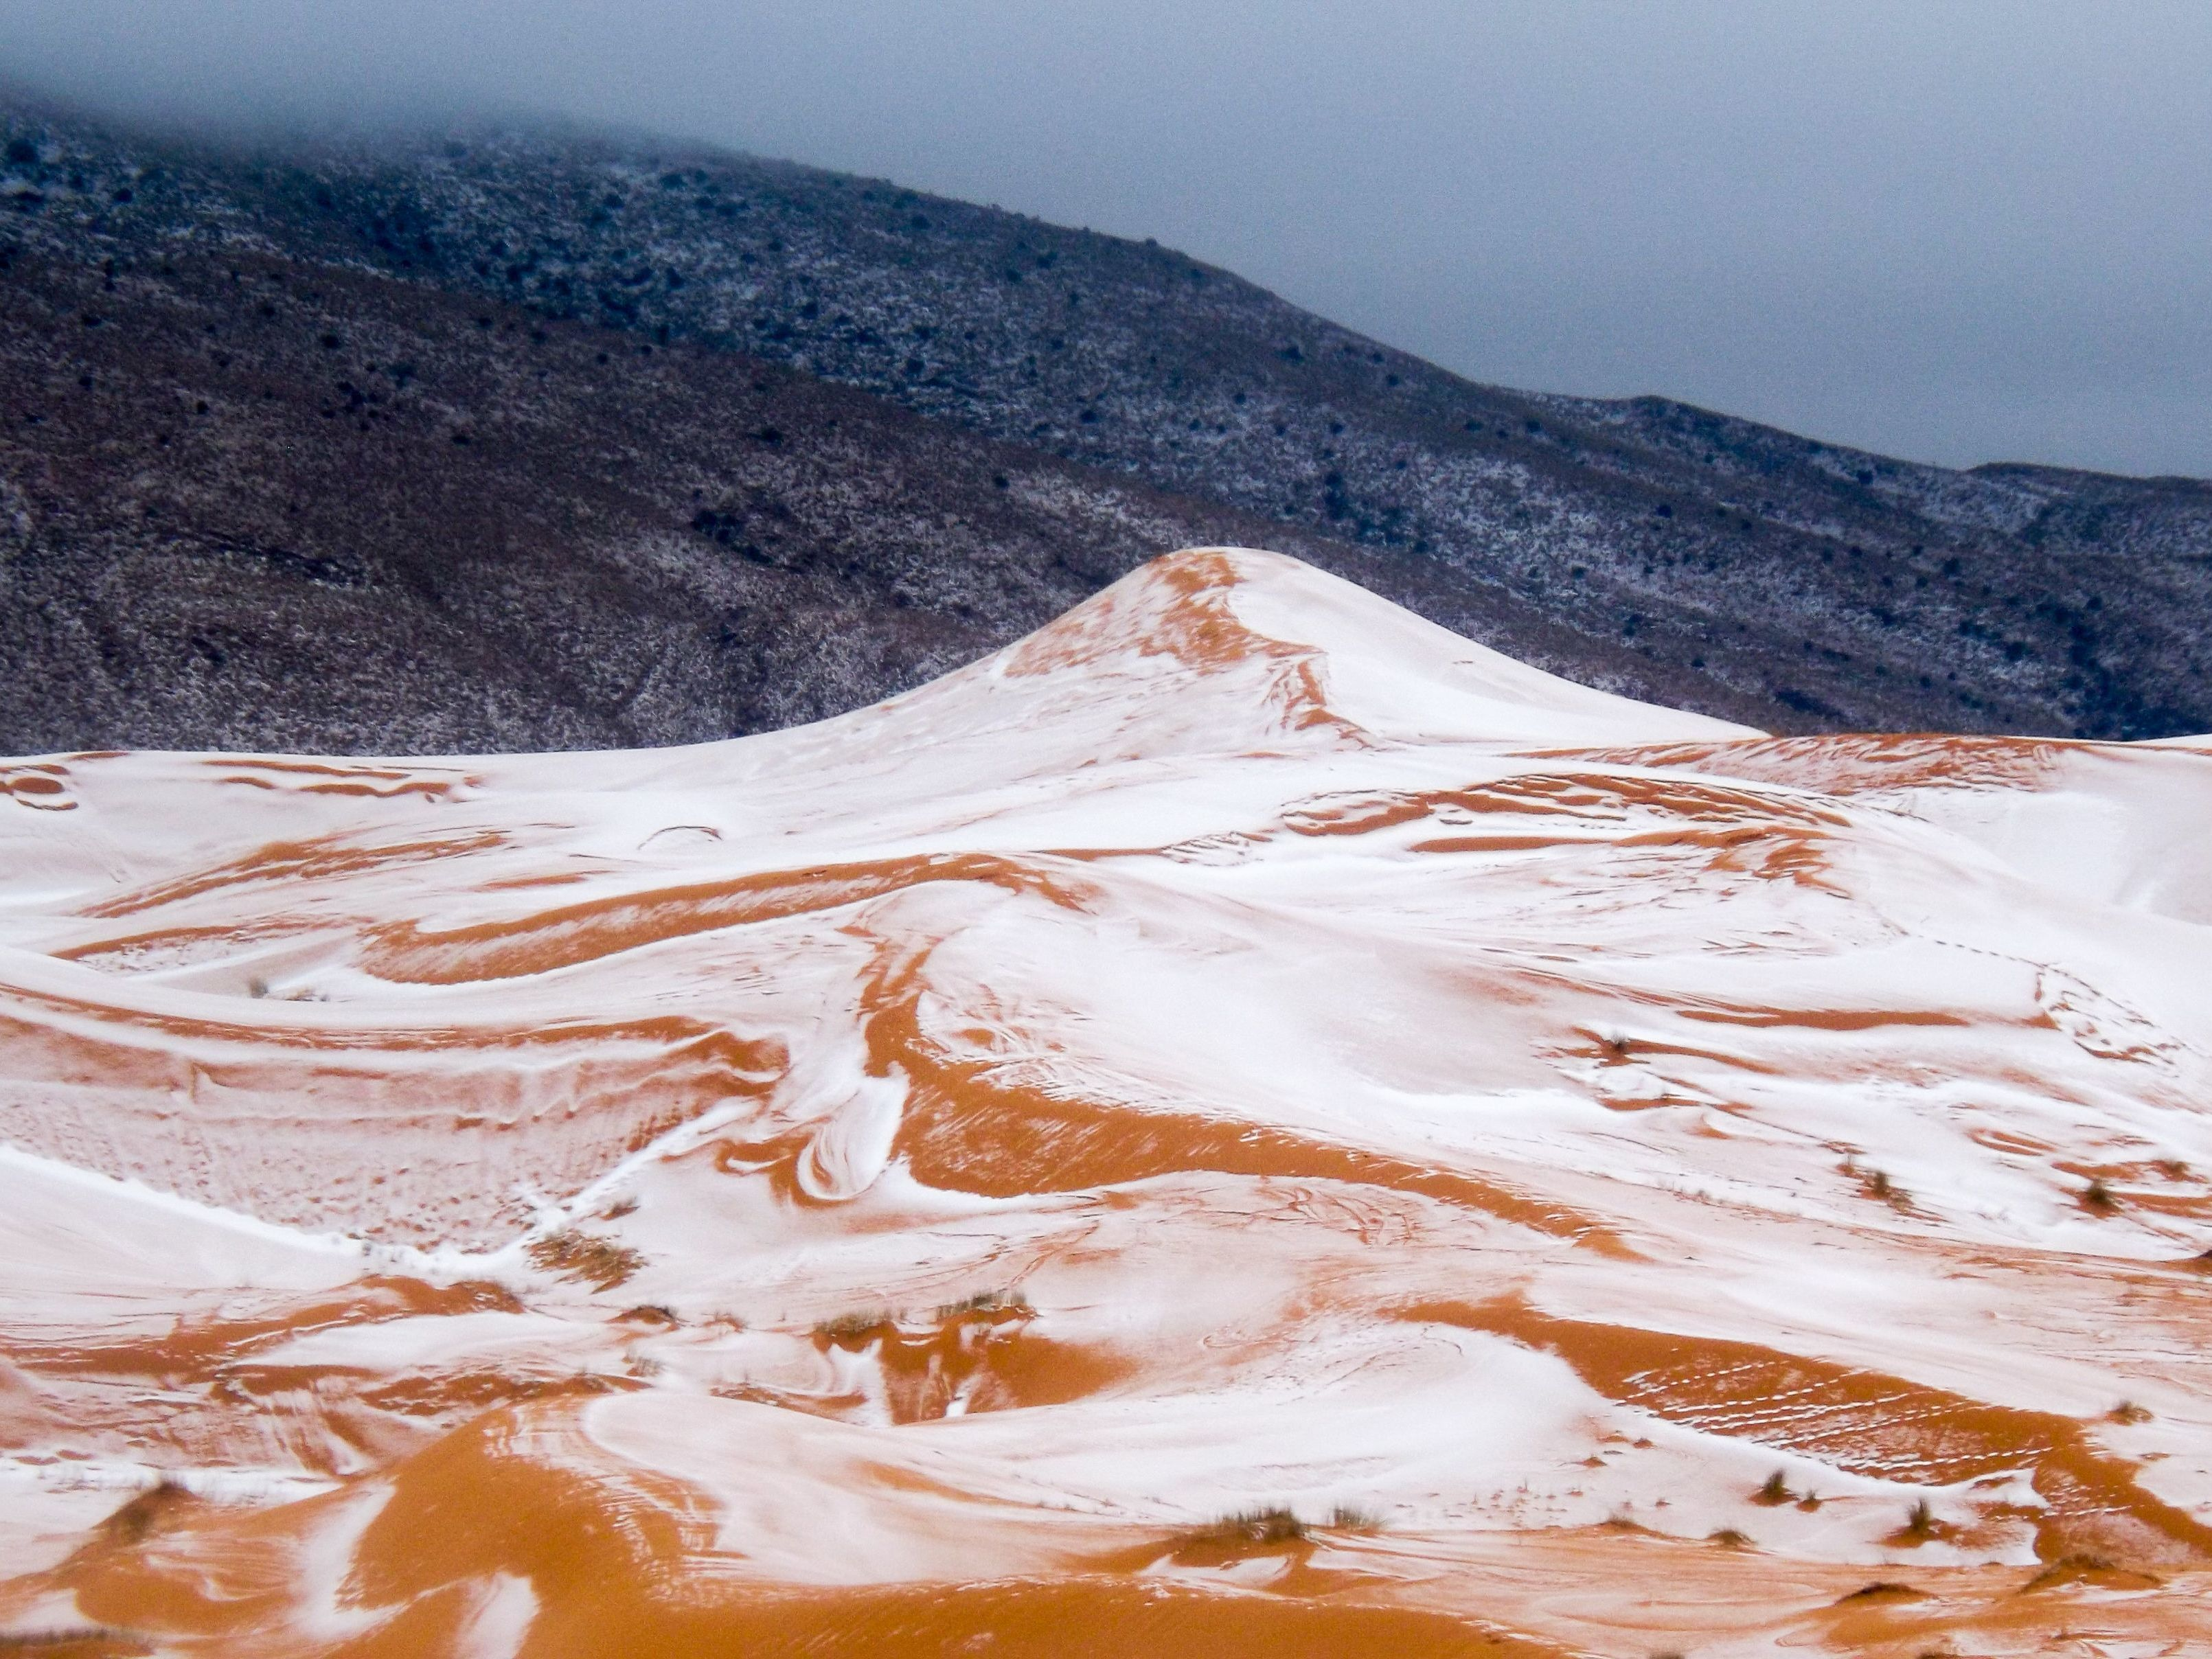 The day snow fell on Sahara desert